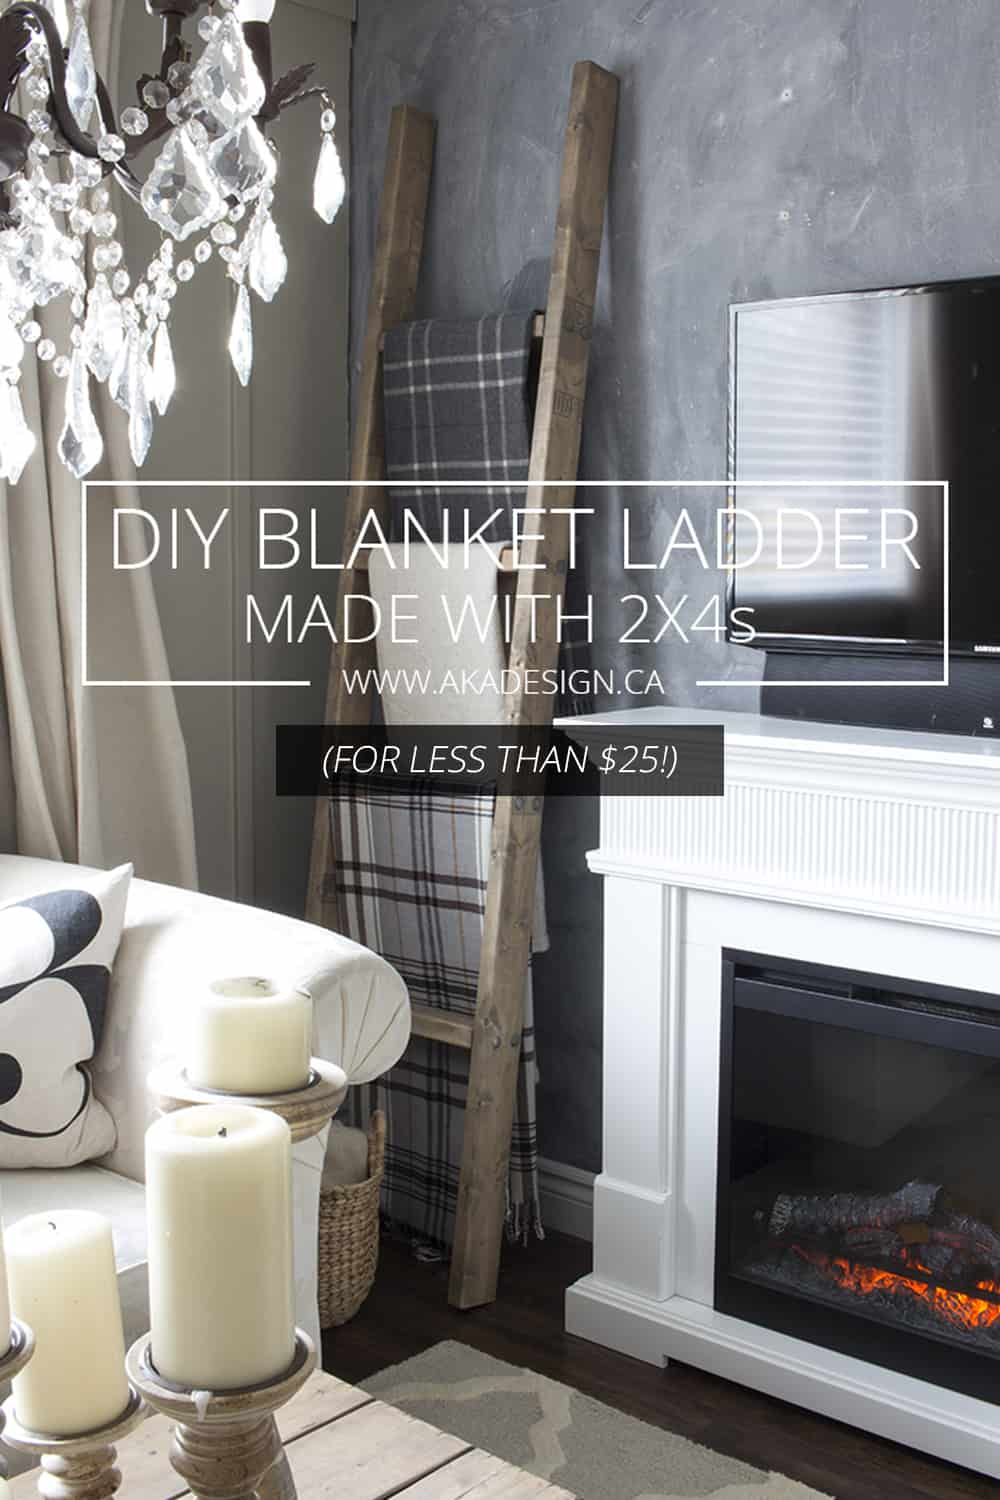 DIY Blanket Ladder Made with 2x4s: Oh man! This is so easy and it looks gorgeous finished.